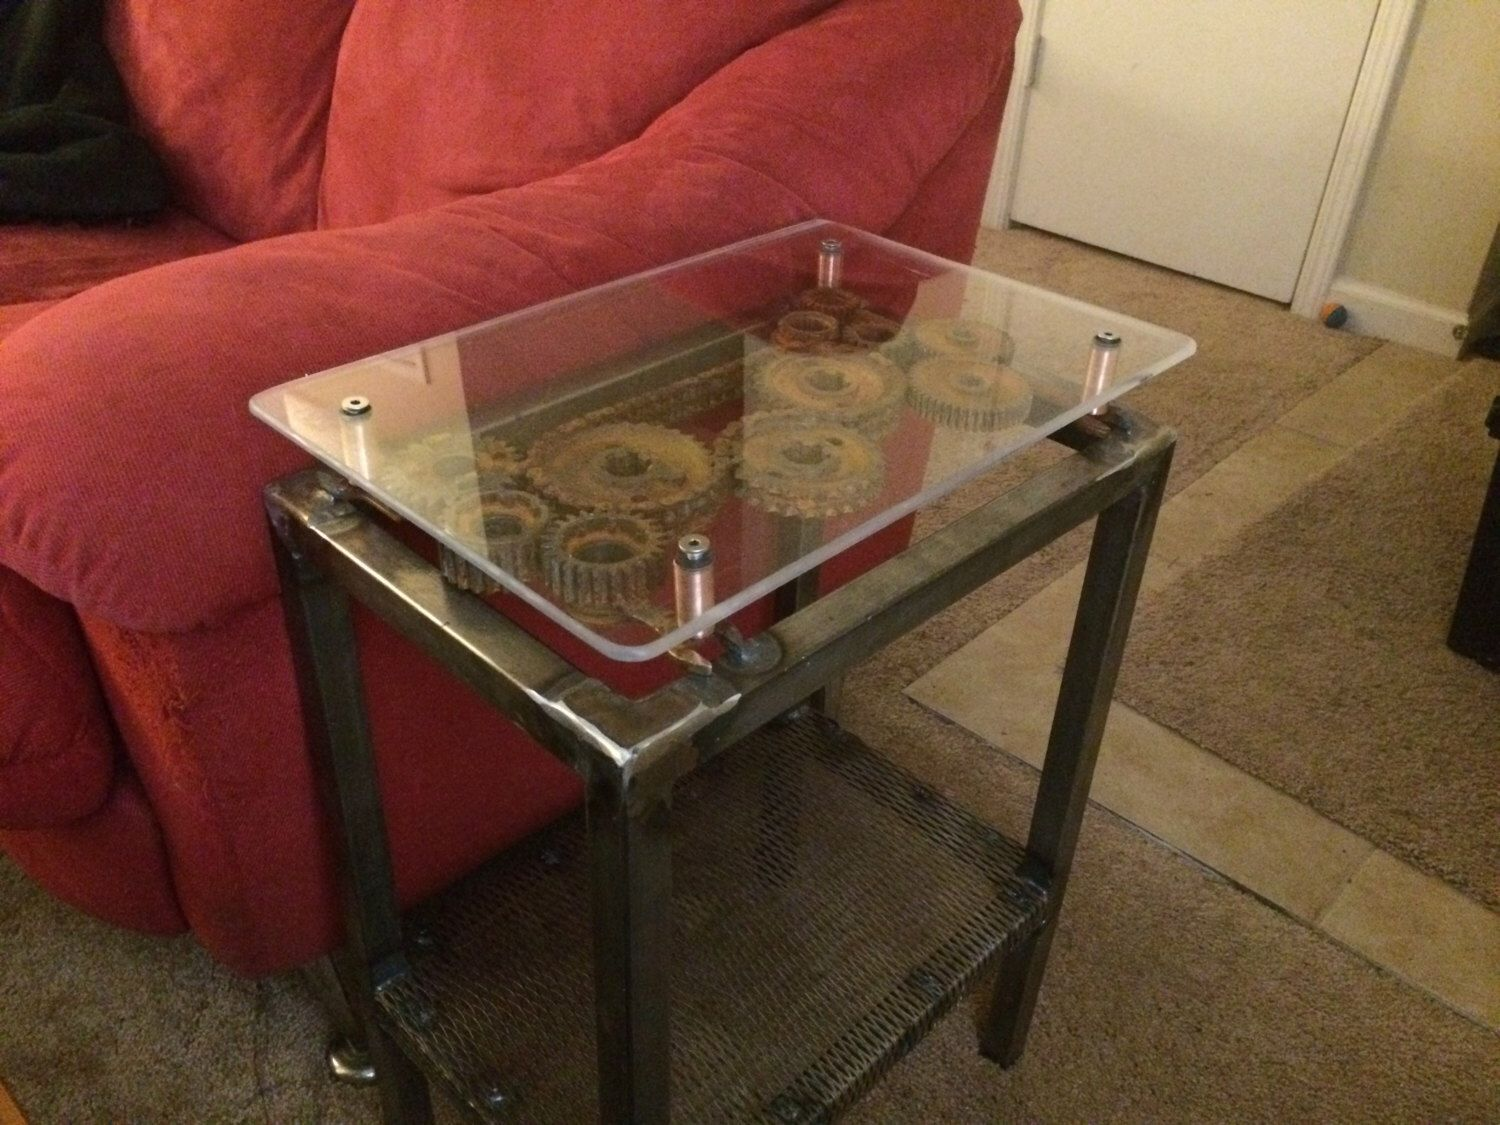 Steampunk End Table Handmade TIG Welded Gears And Copper Accents Industrial Design With Raw Steel Visible Welds By MongoFabrication On Etsy